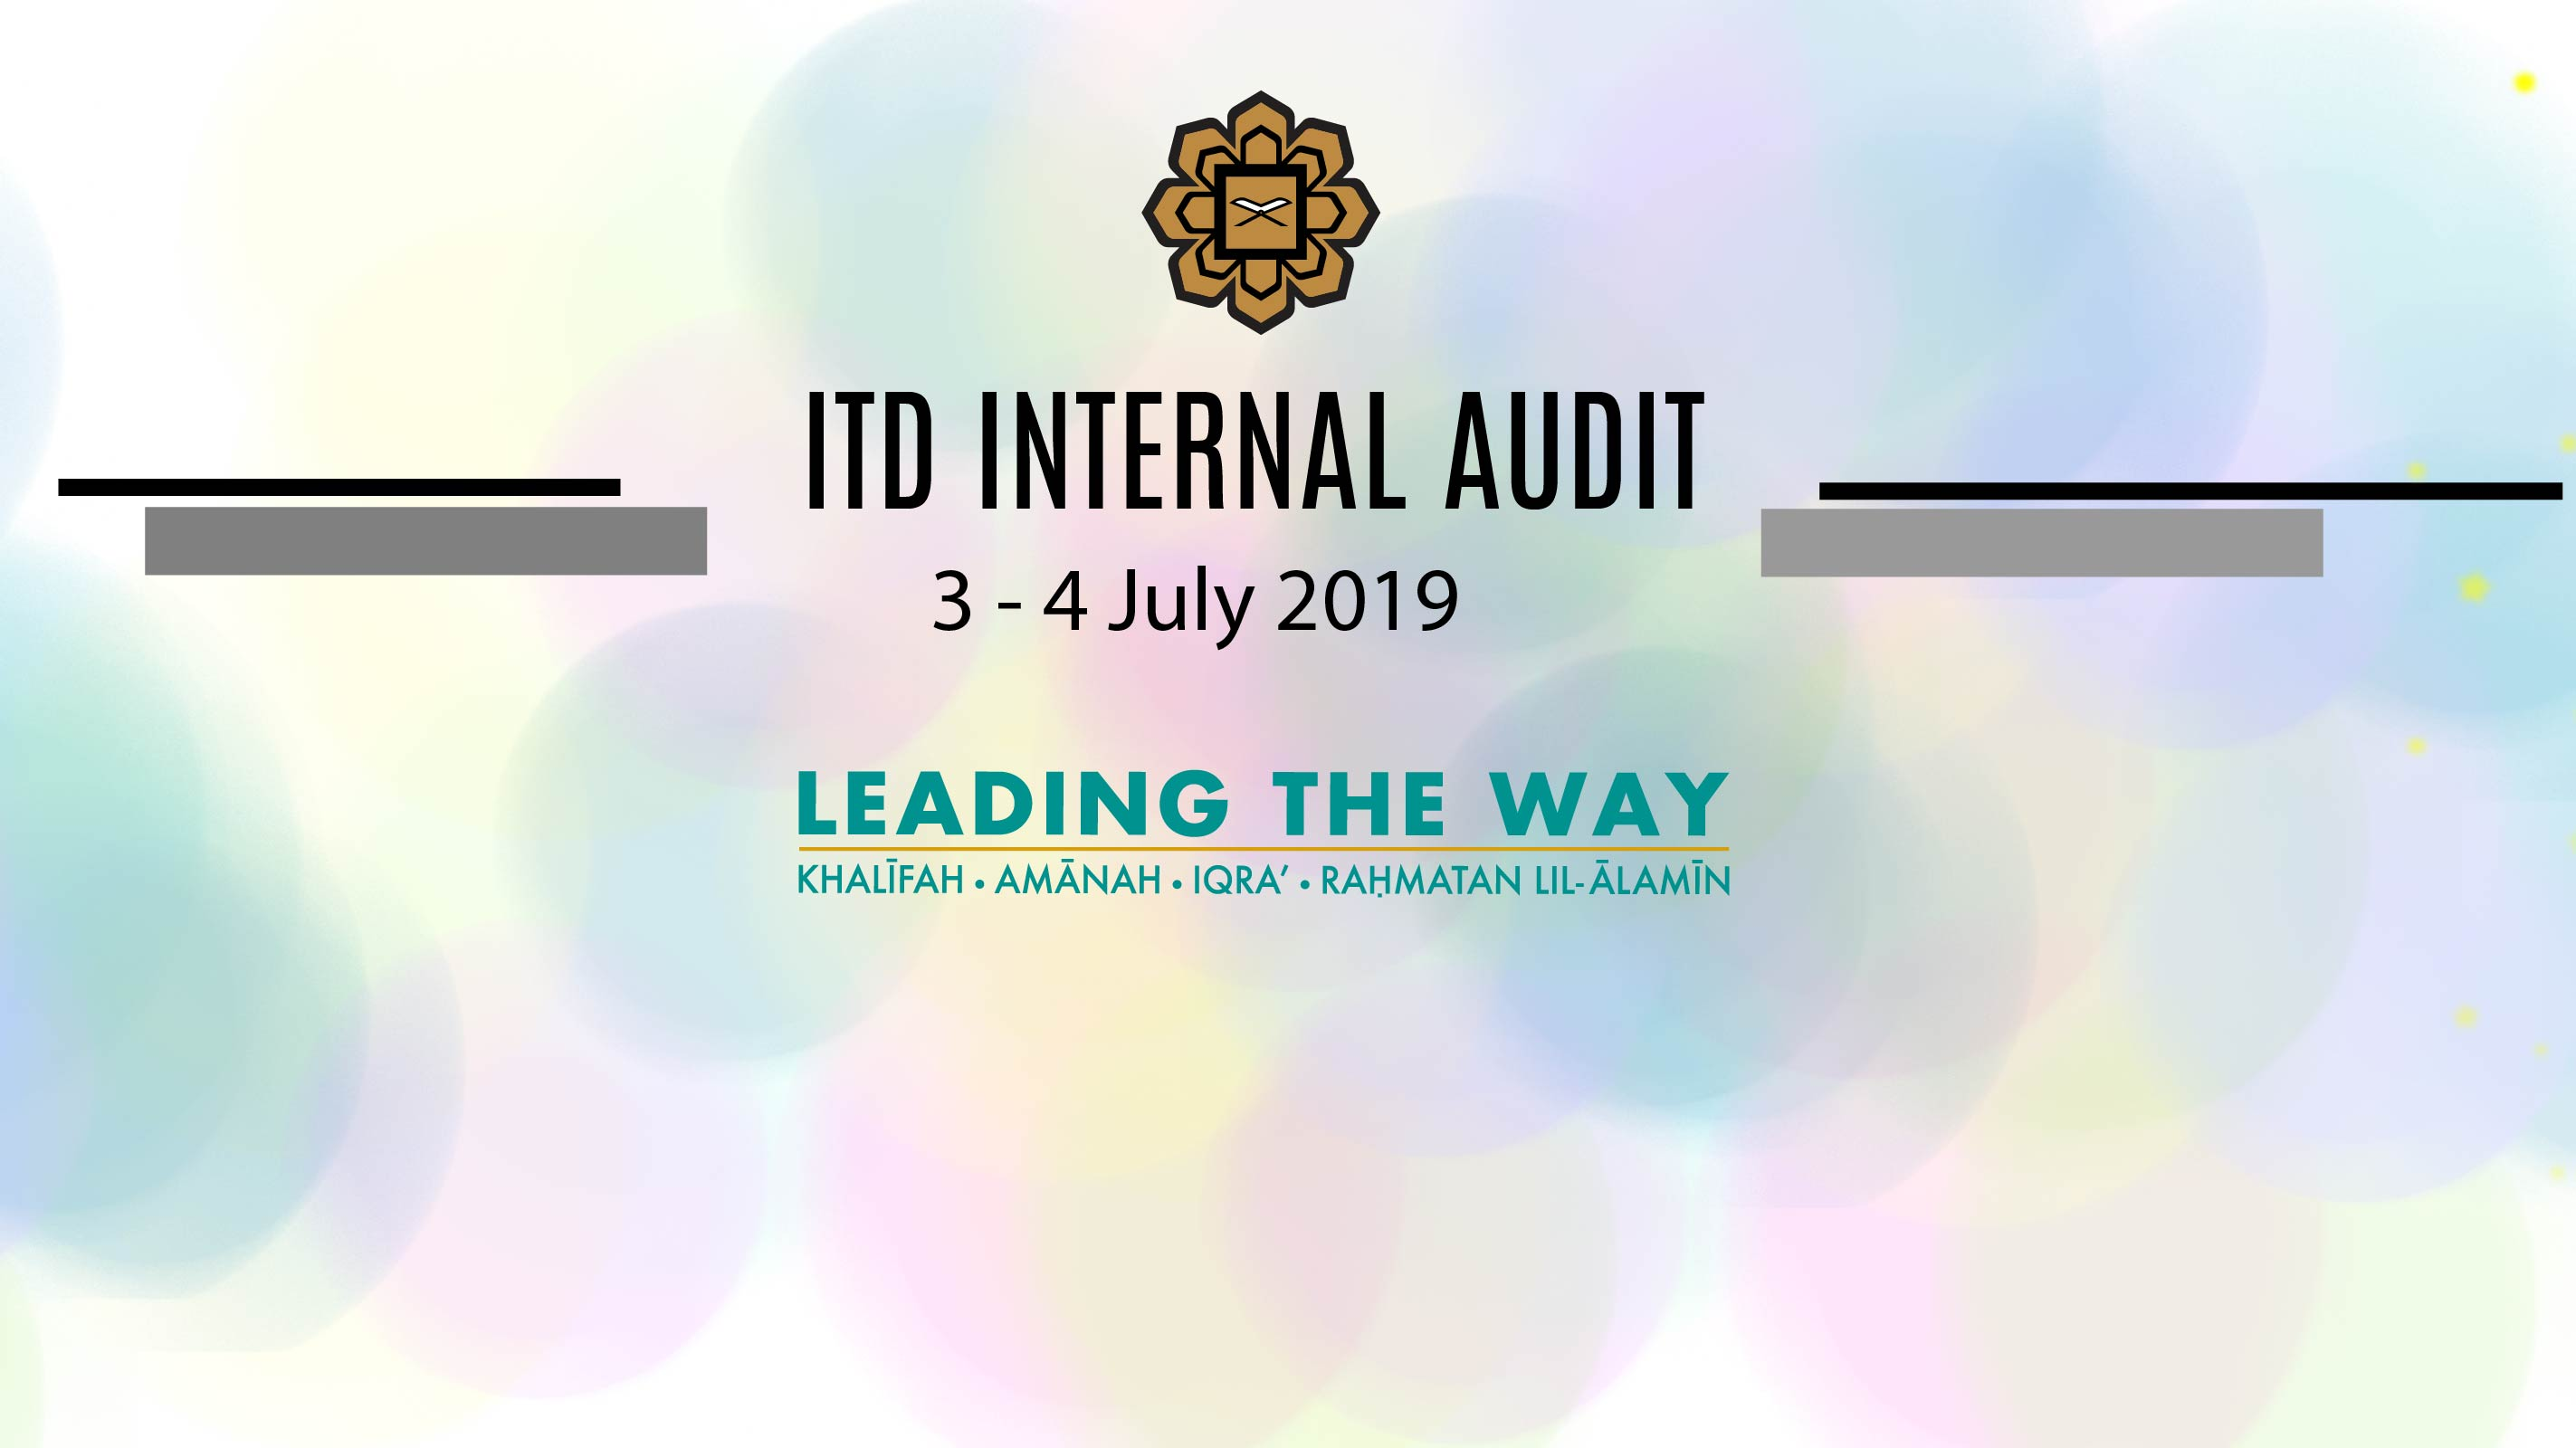 ITD Internal Audit 2019